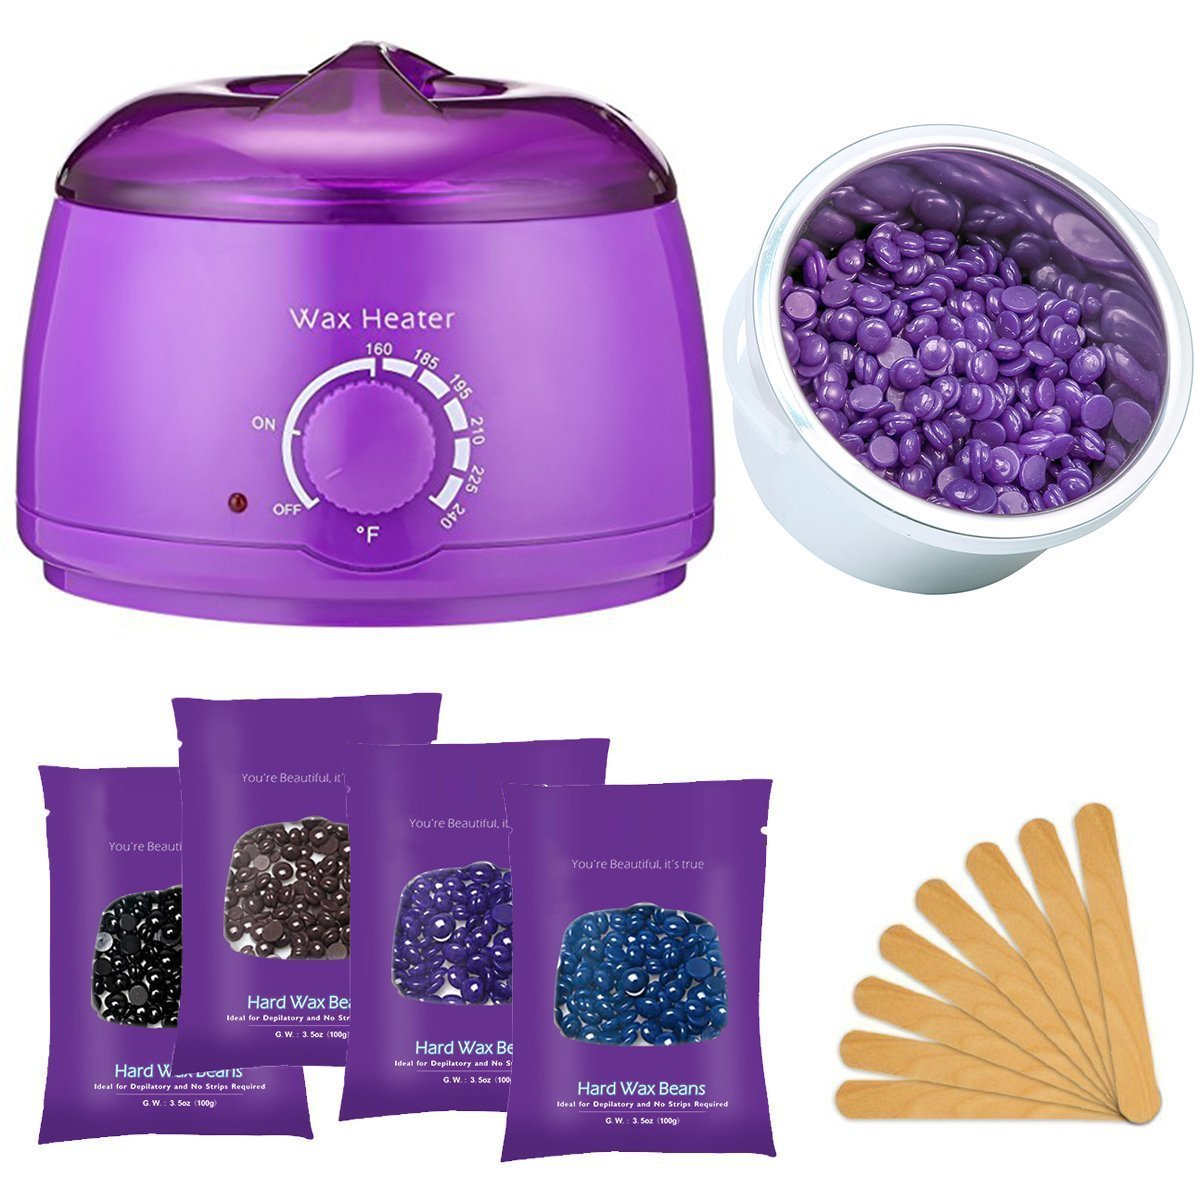 Wax Warmer, Fitnate Hair Removal Hot Wax Warmer Set Stylish Electric Hair Removal Heater 160℉ - 240℉ Control With 4 Pack of Wax Beans And 10 Sticks